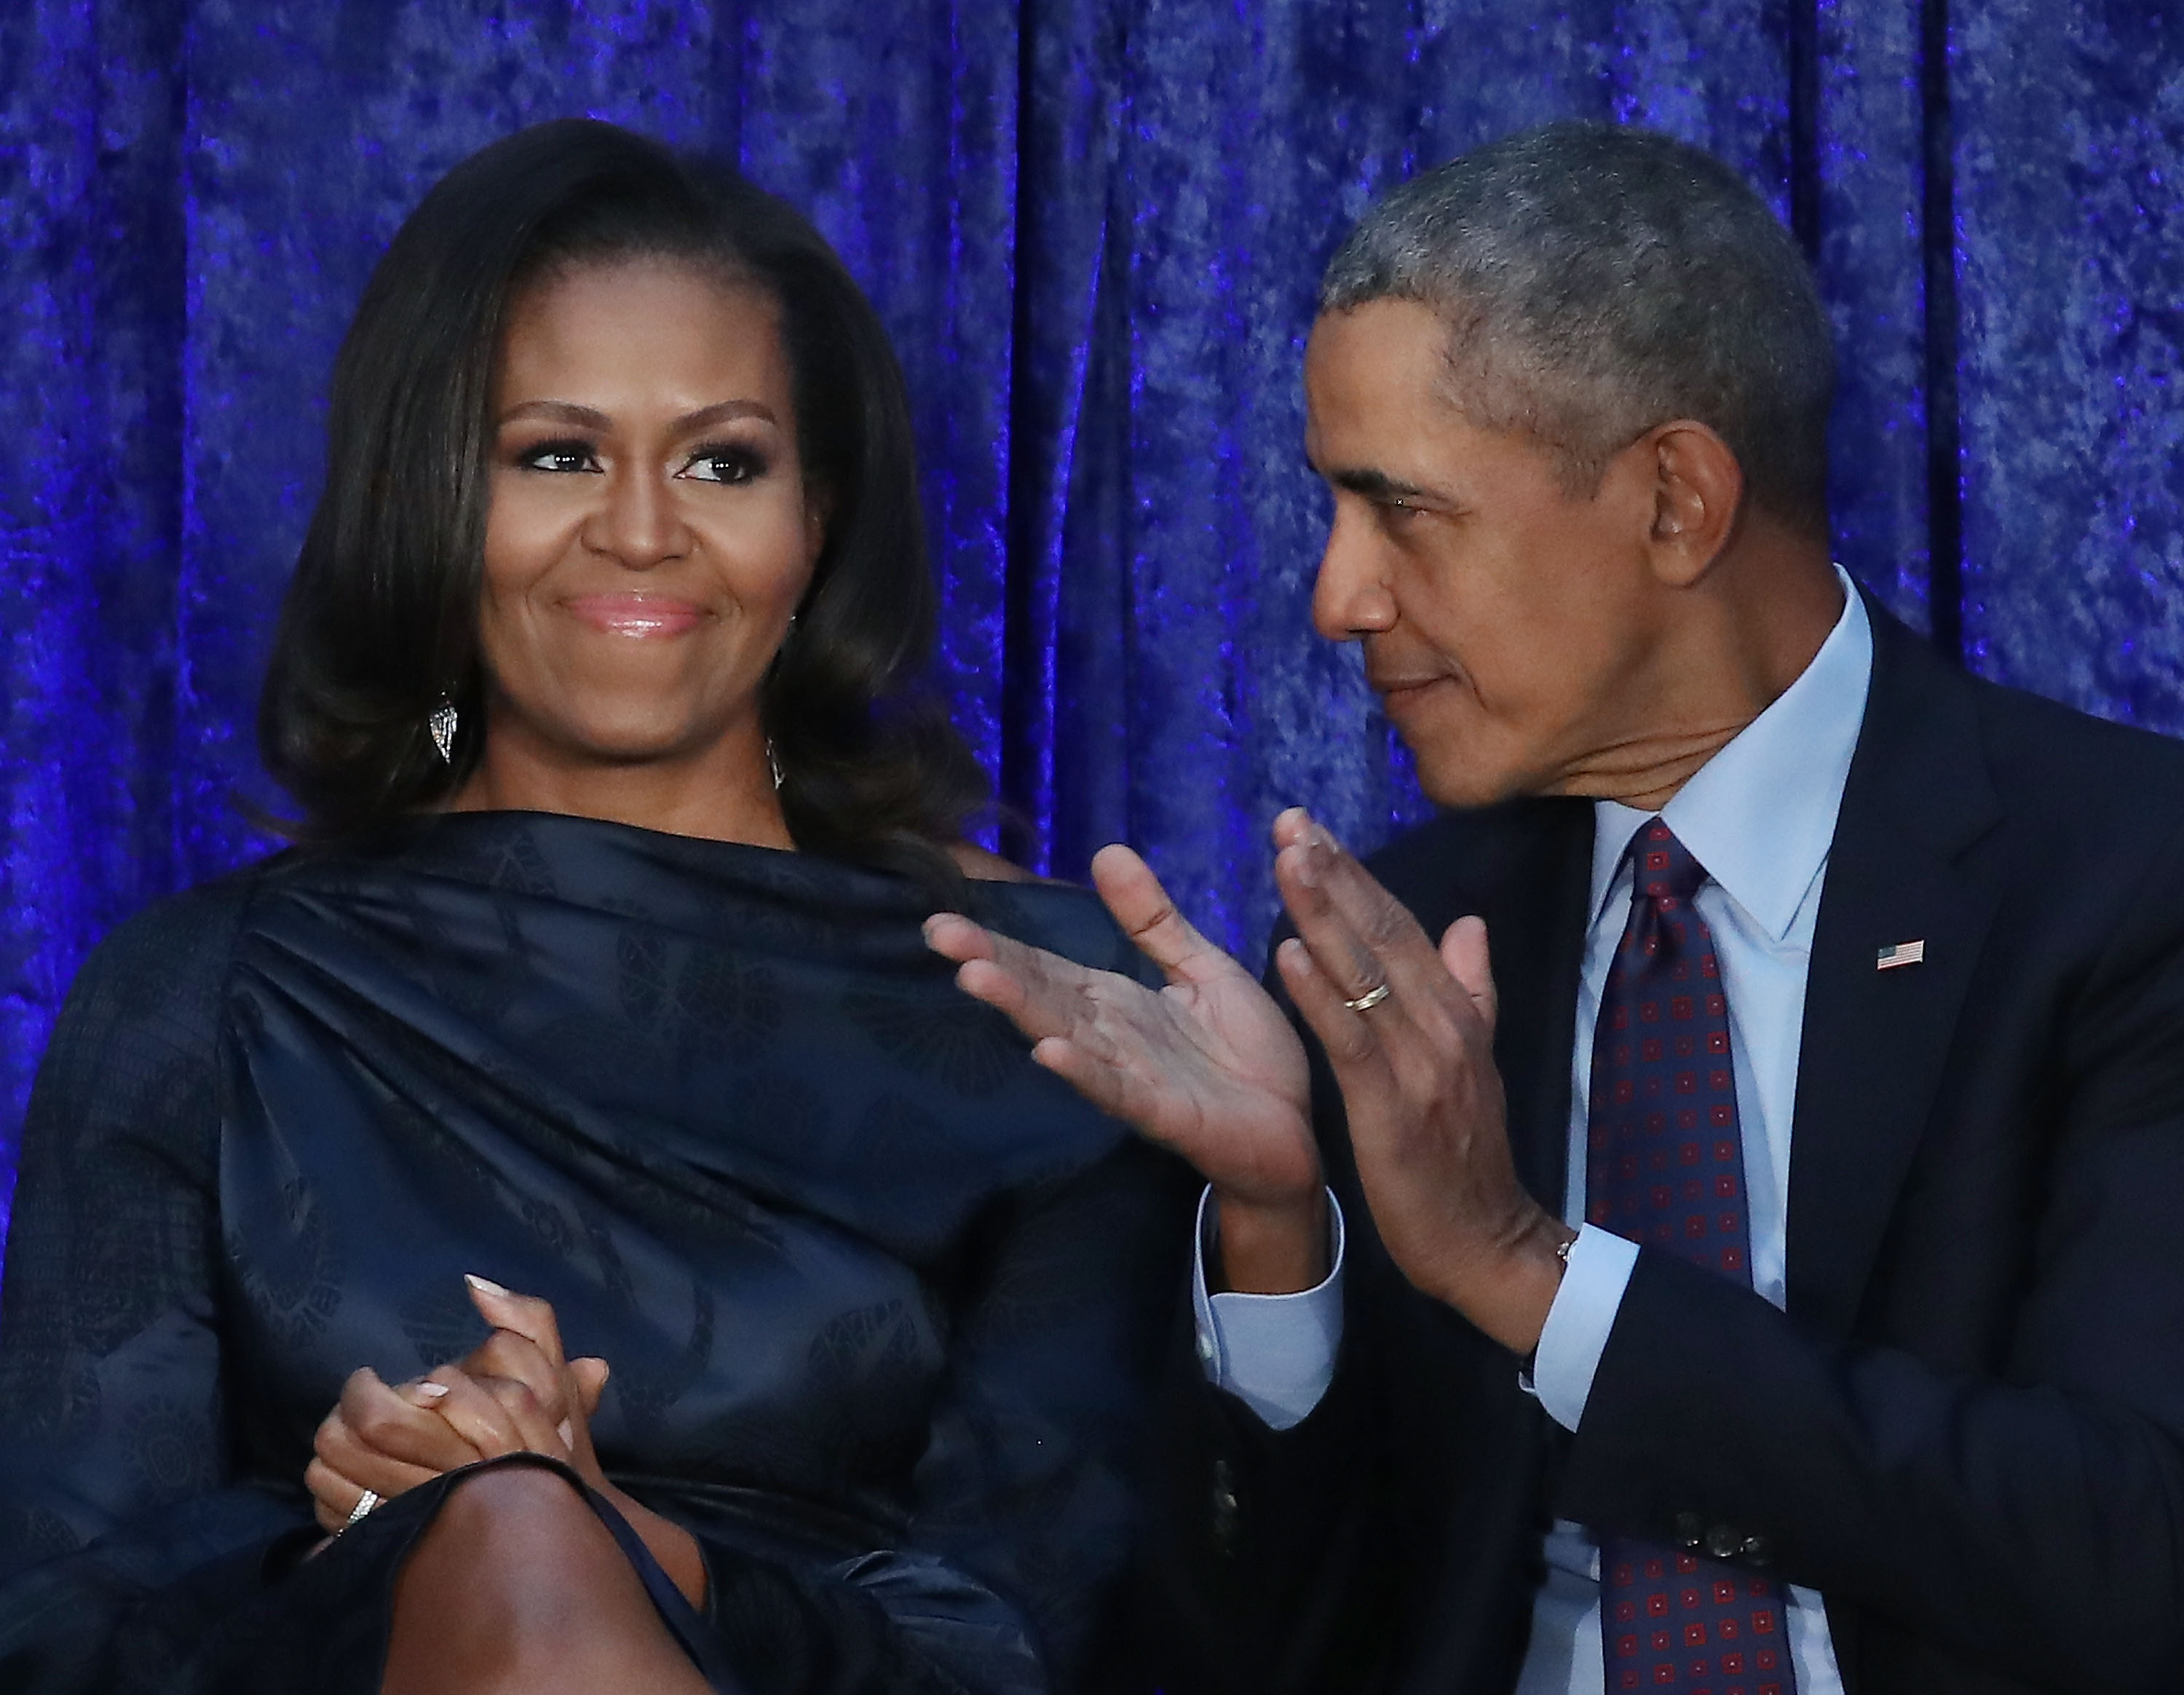 Former U.S. President Barack Obama and First Lady Michelle Obama participate in the unveiling of their official portraits during a ceremony at the Smithsonian's National Portrait Gallery, on February 12, 2018 in Washington, DC (Getty Images)